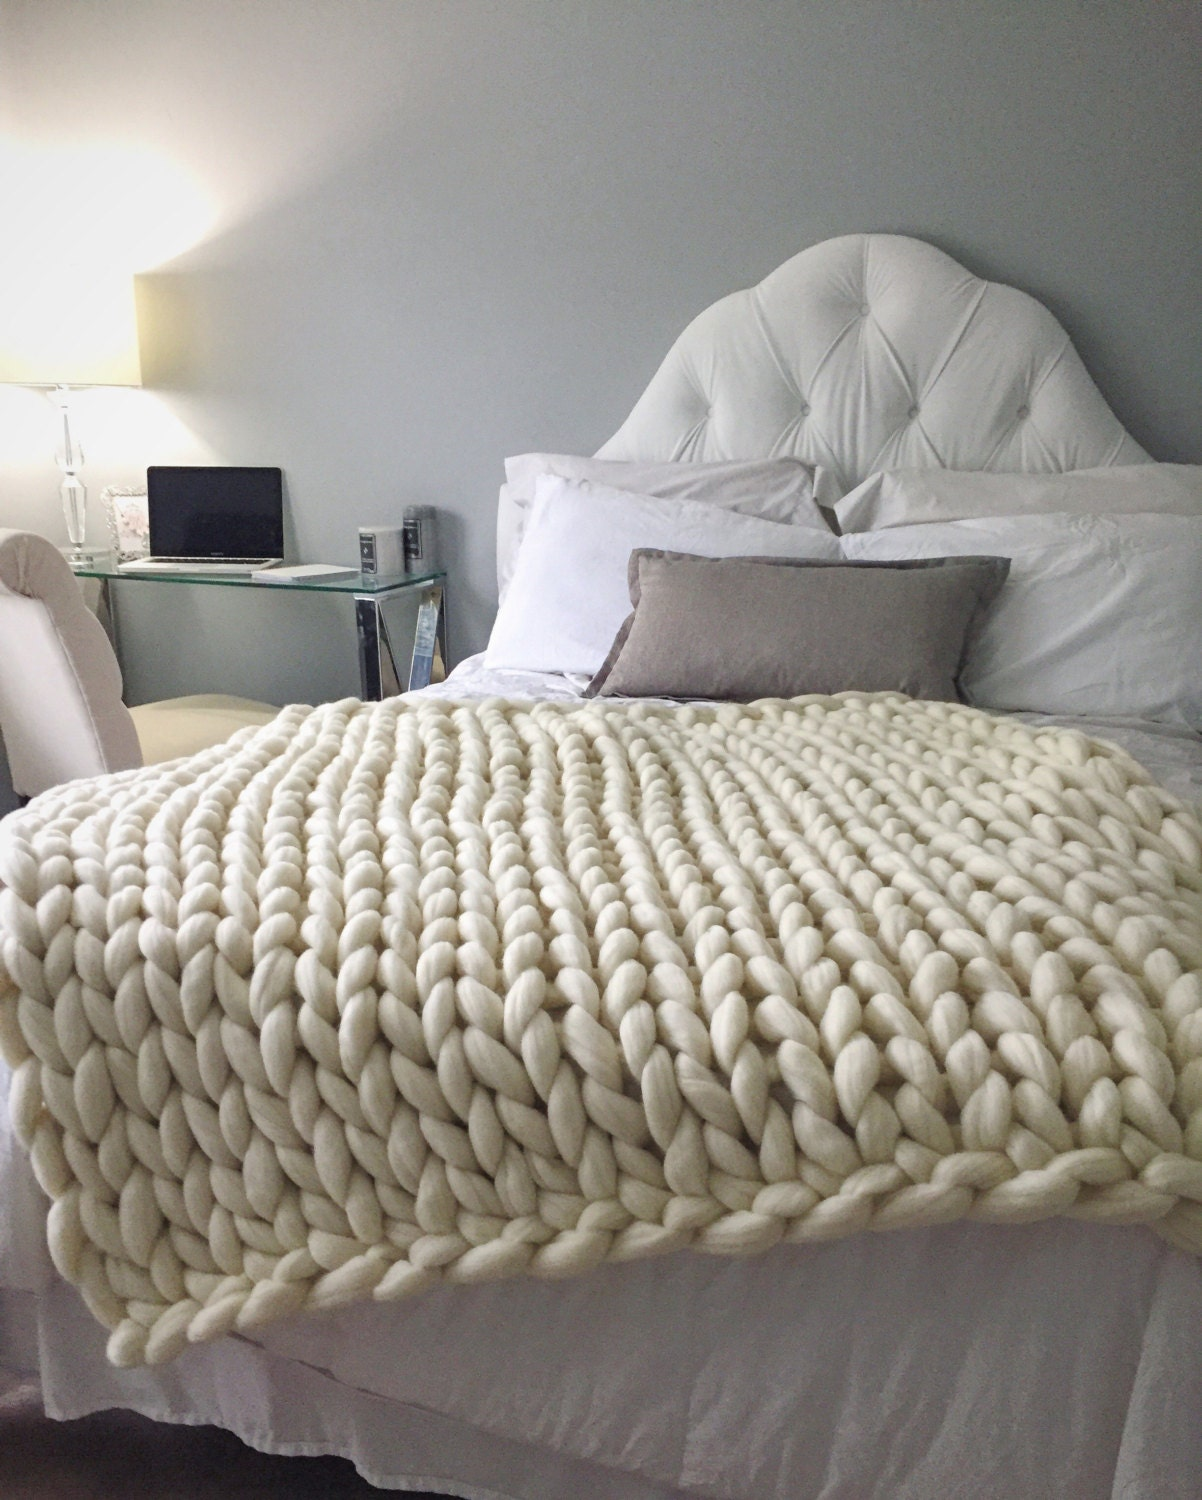 sale chunky knit blanket merino wool blanket hand knitted. Black Bedroom Furniture Sets. Home Design Ideas